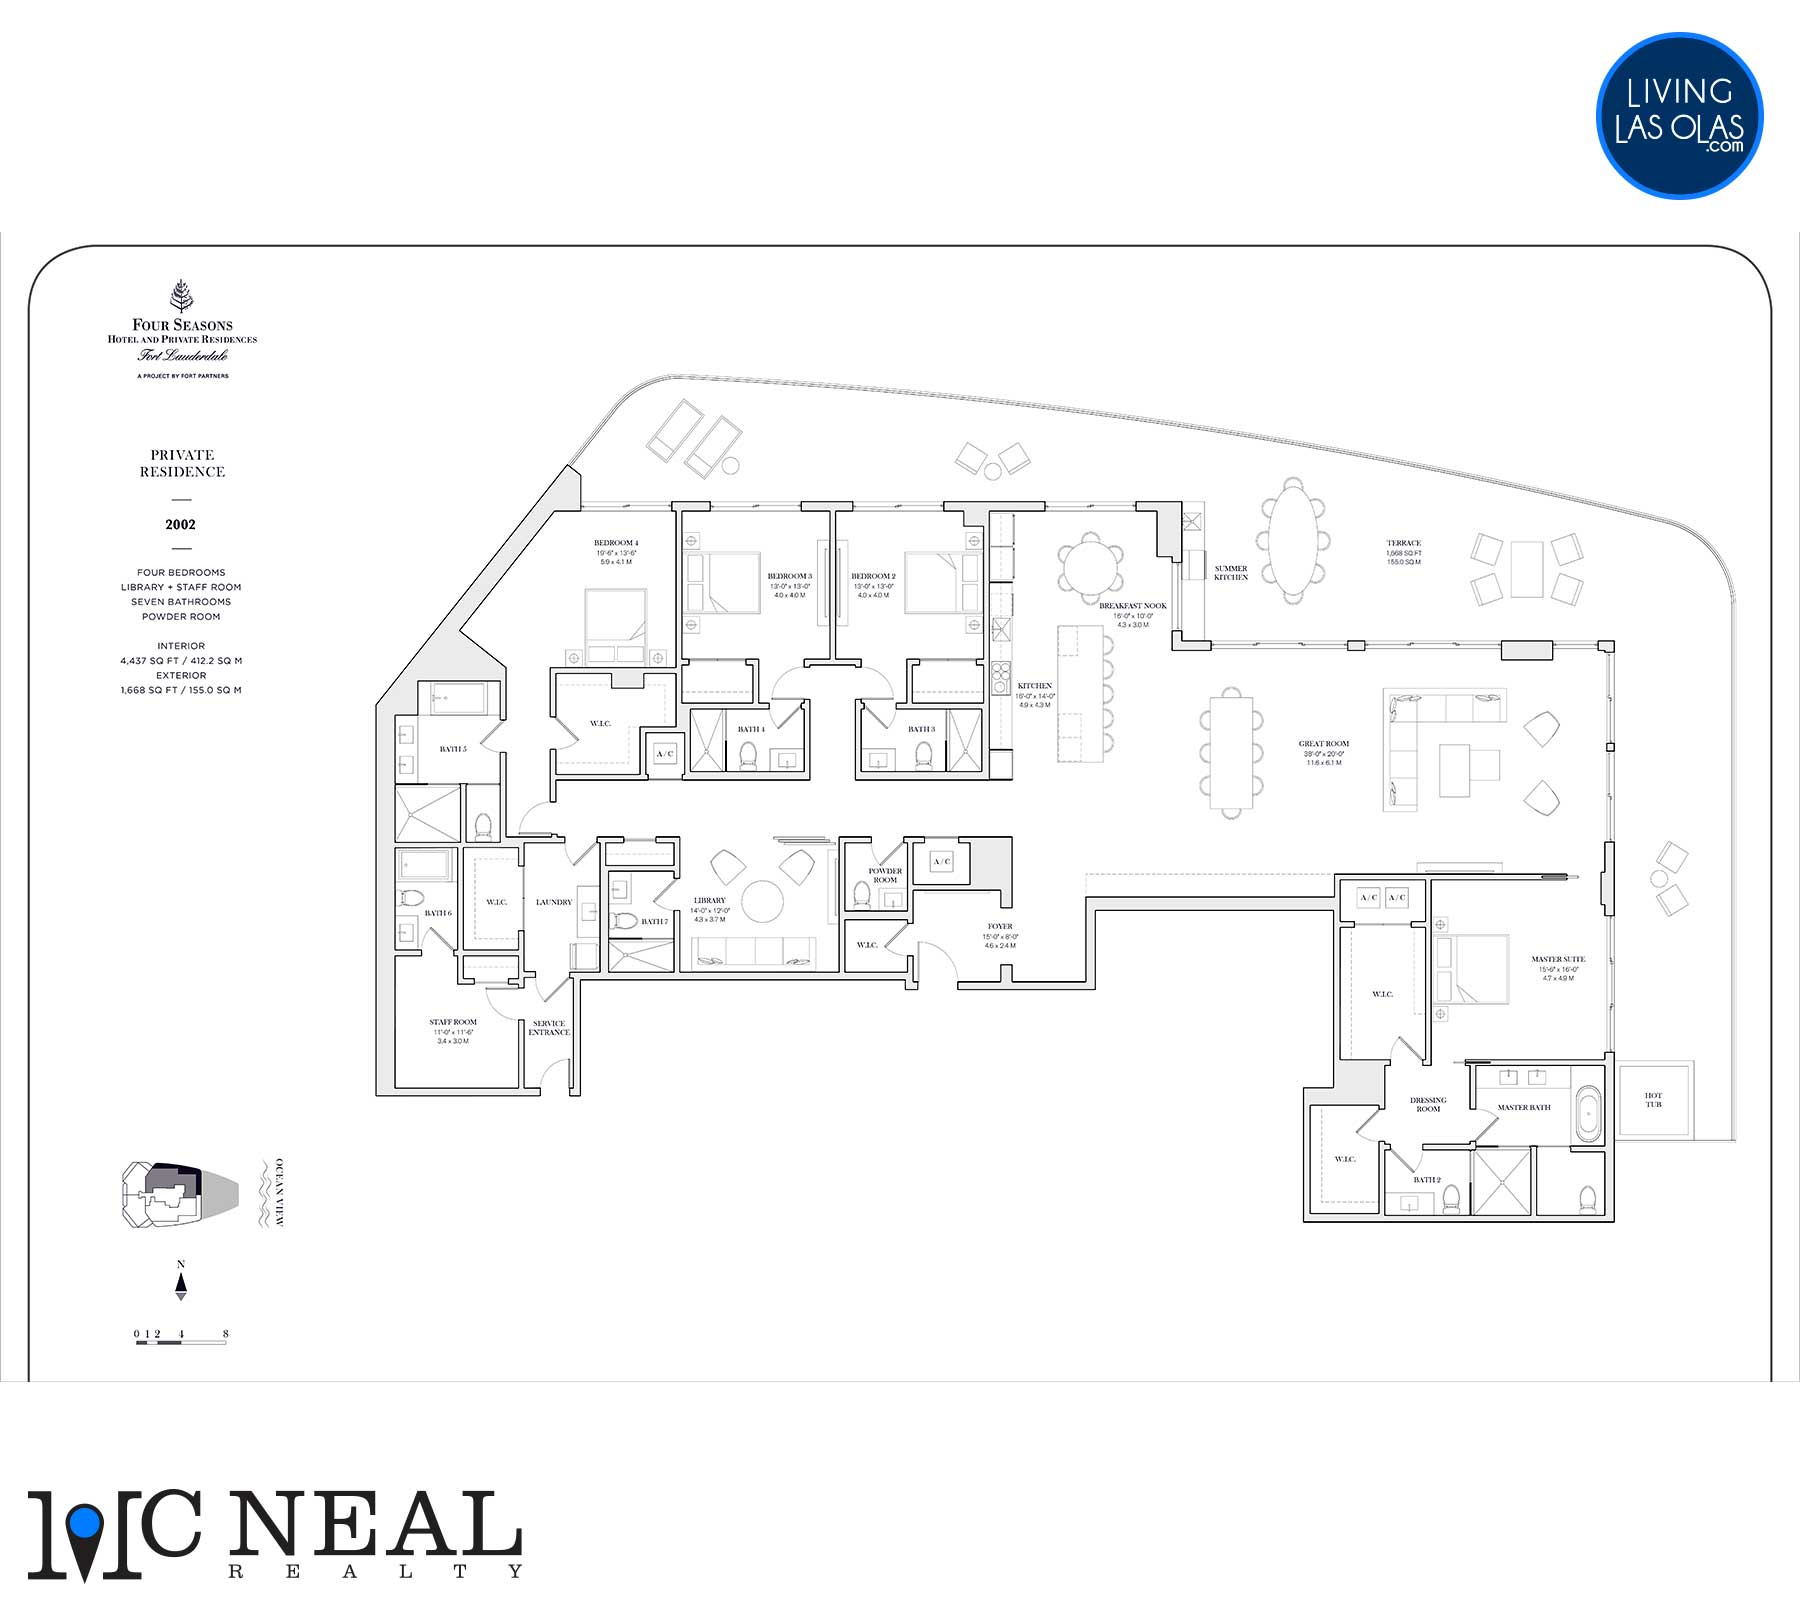 Four Seasons Private Residences Floor Plan 2002